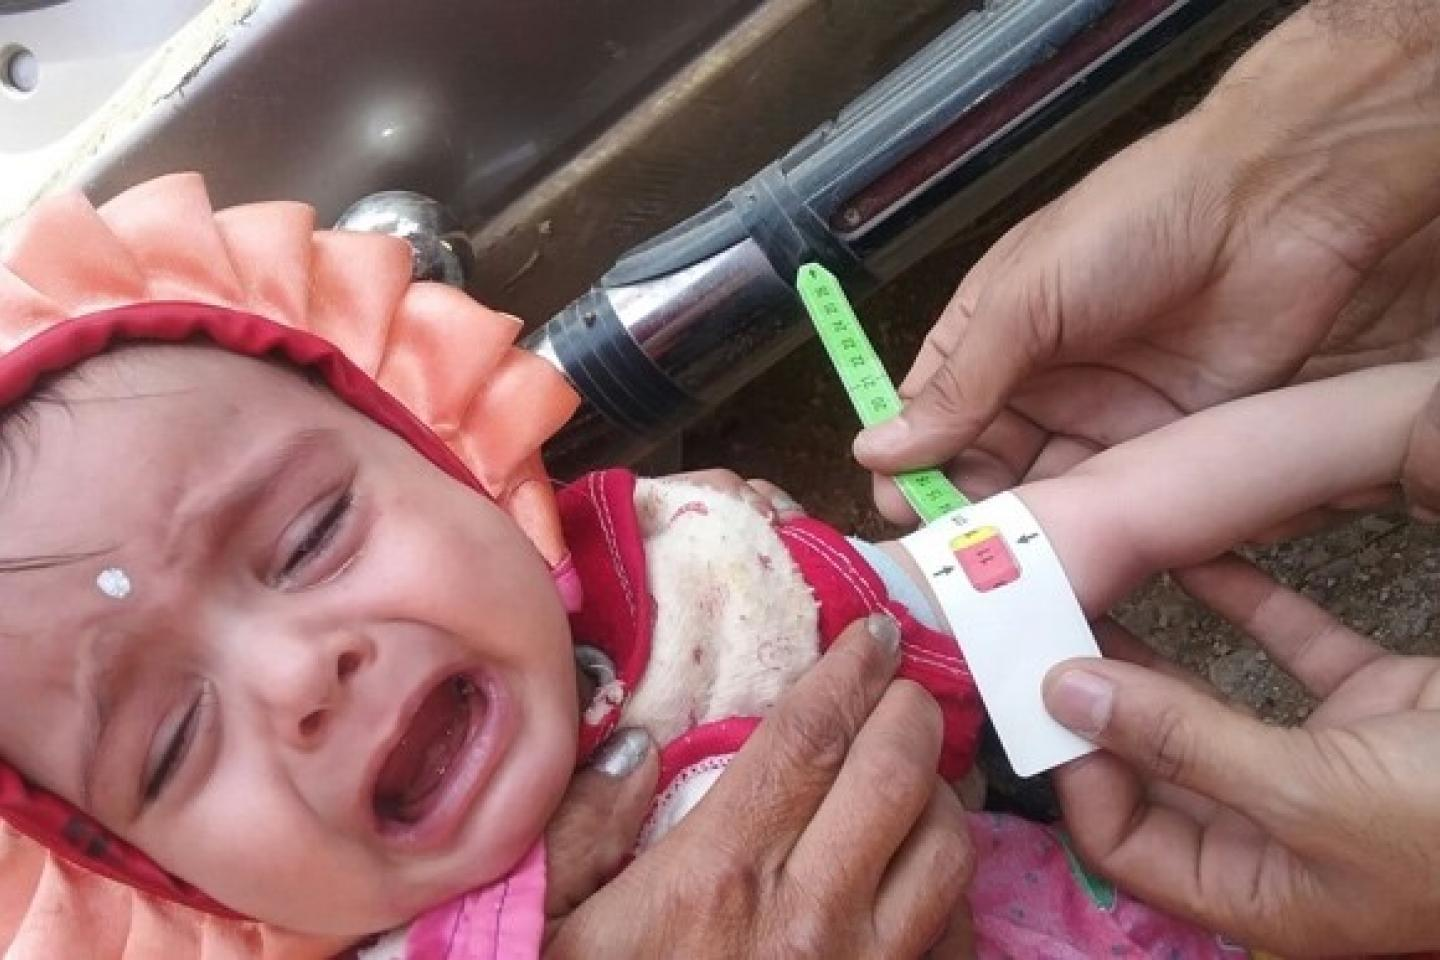 Before receiving treatment, the baby girl is assessed for severe acute malnutrition